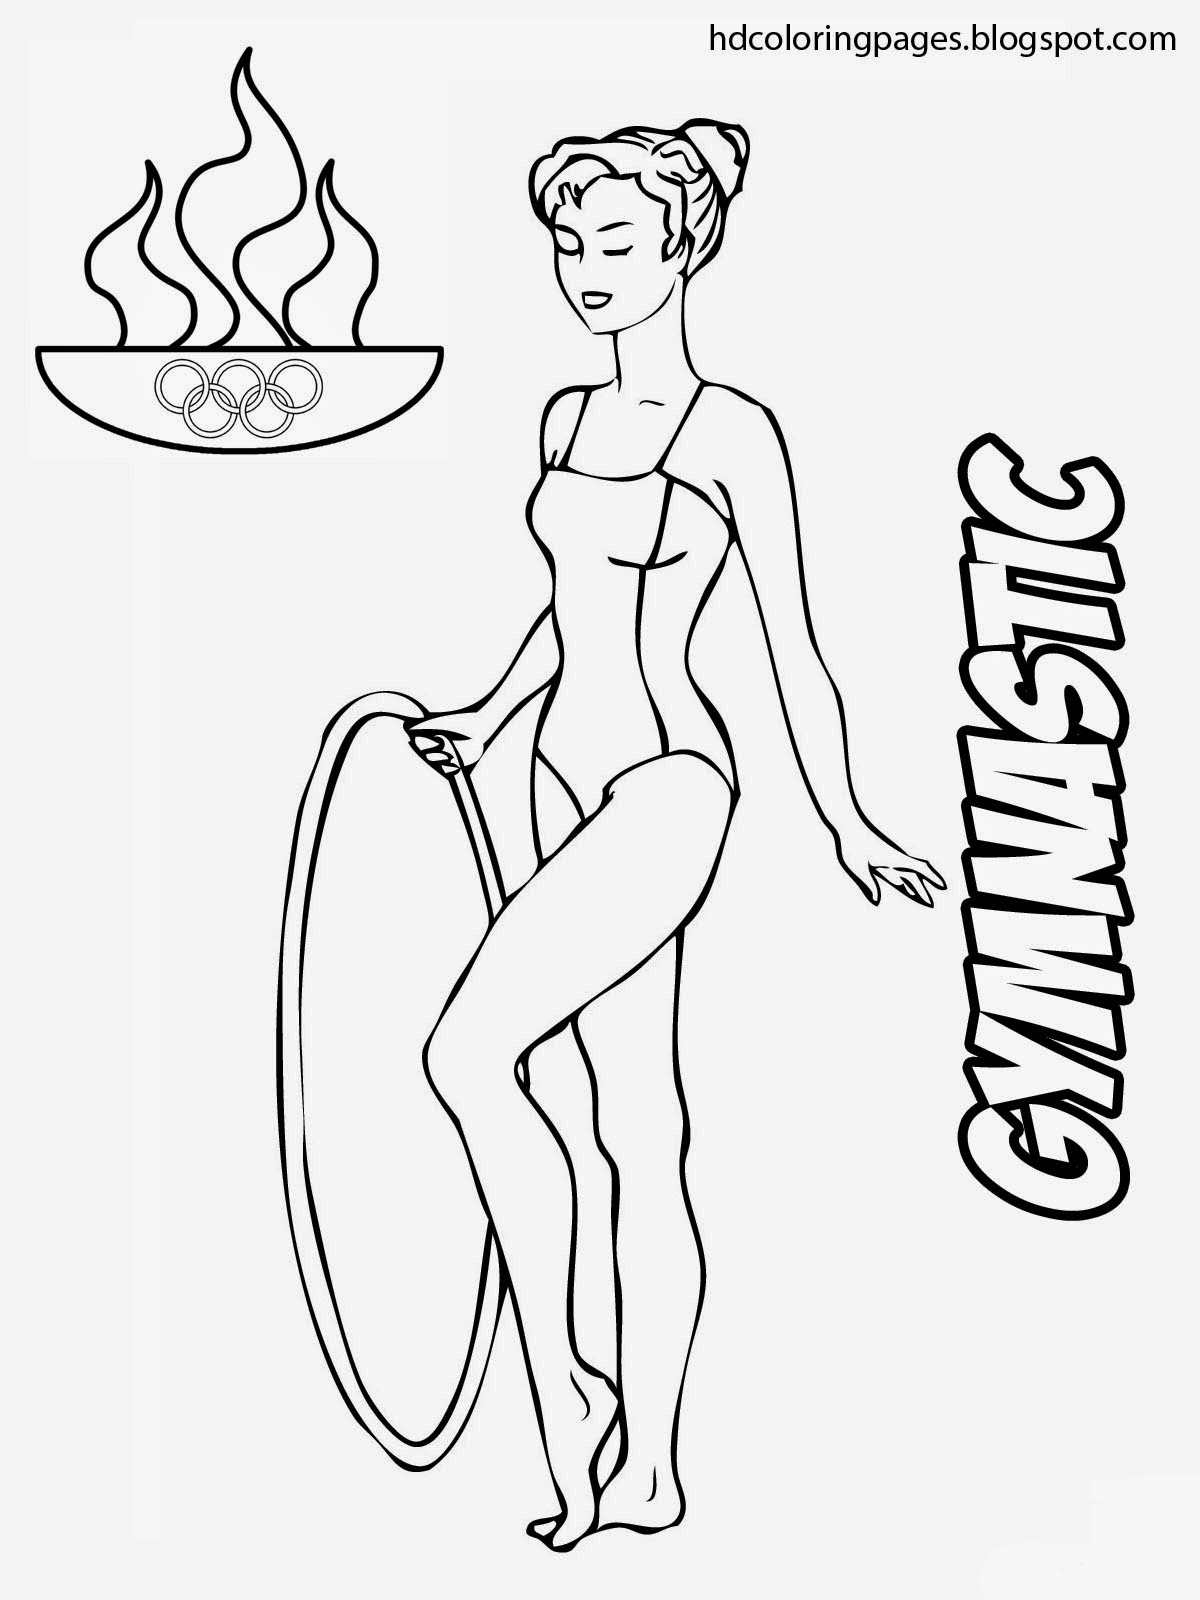 Coloring Pages Printable Gymnastics Coloring Pages gymnastic coloring pages eassume com coloring